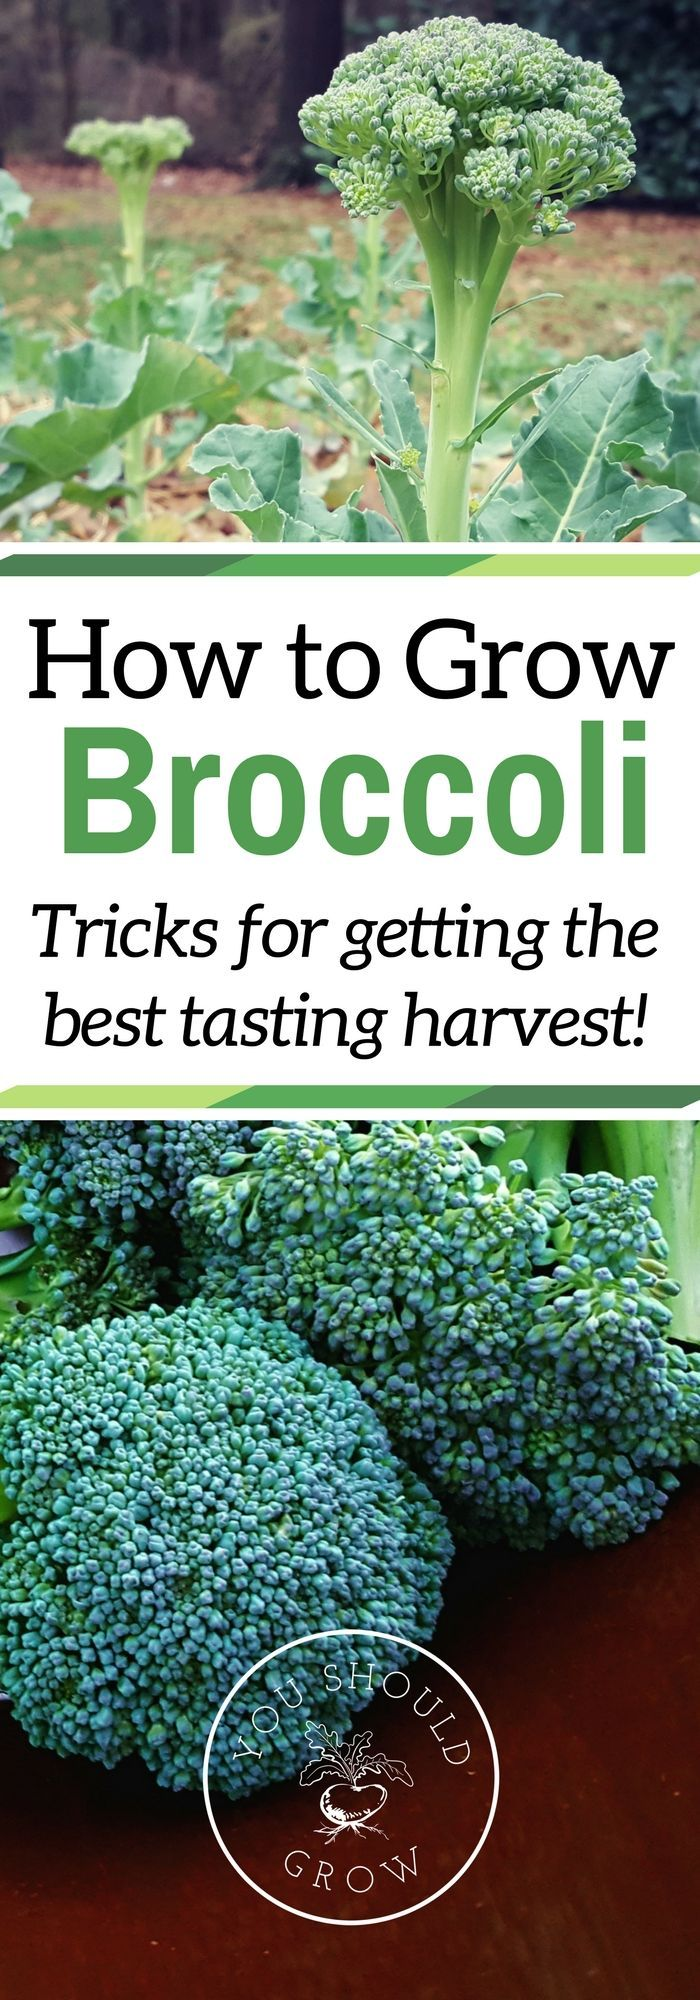 If you've had trouble growing broccoli before, read these tips for getting a tasty crop. Grow your own delicious broccoli in your garden.   via @whippoorwillgar